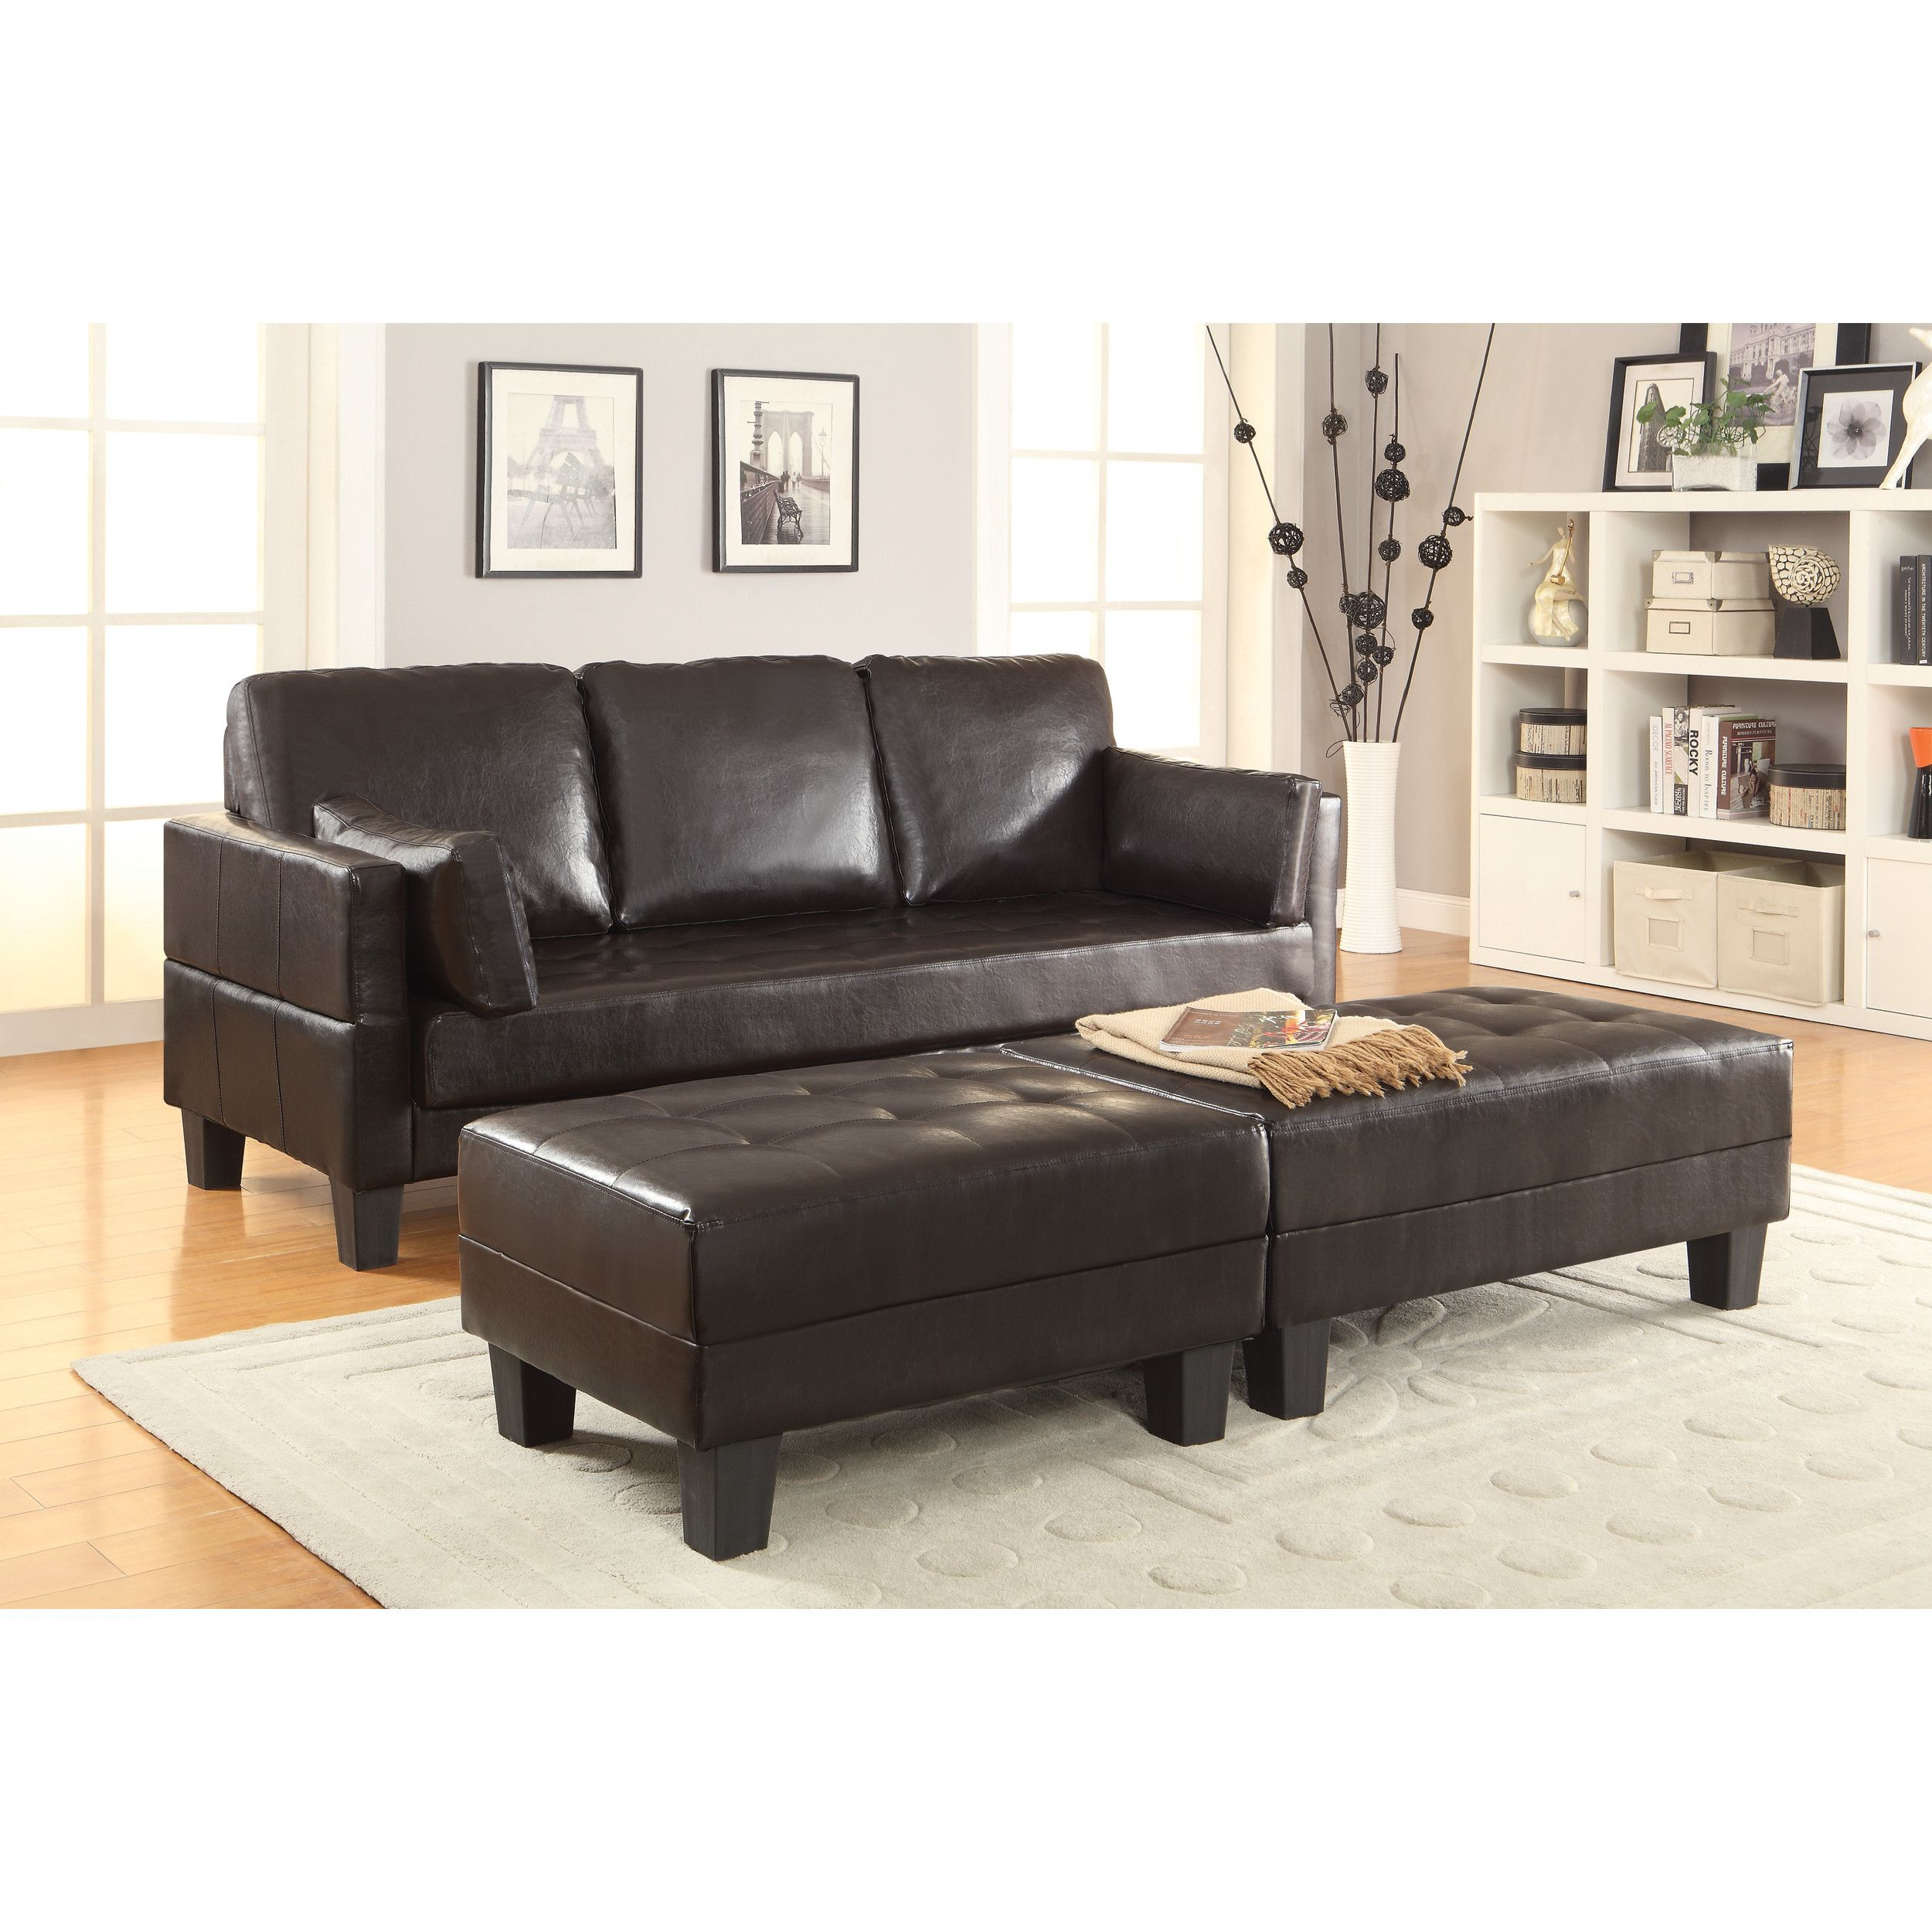 Awesome Leather Sleeper Sofas , Perfect Leather Sleeper Sofas 56 Sofas And  Couches Ideas With Leather